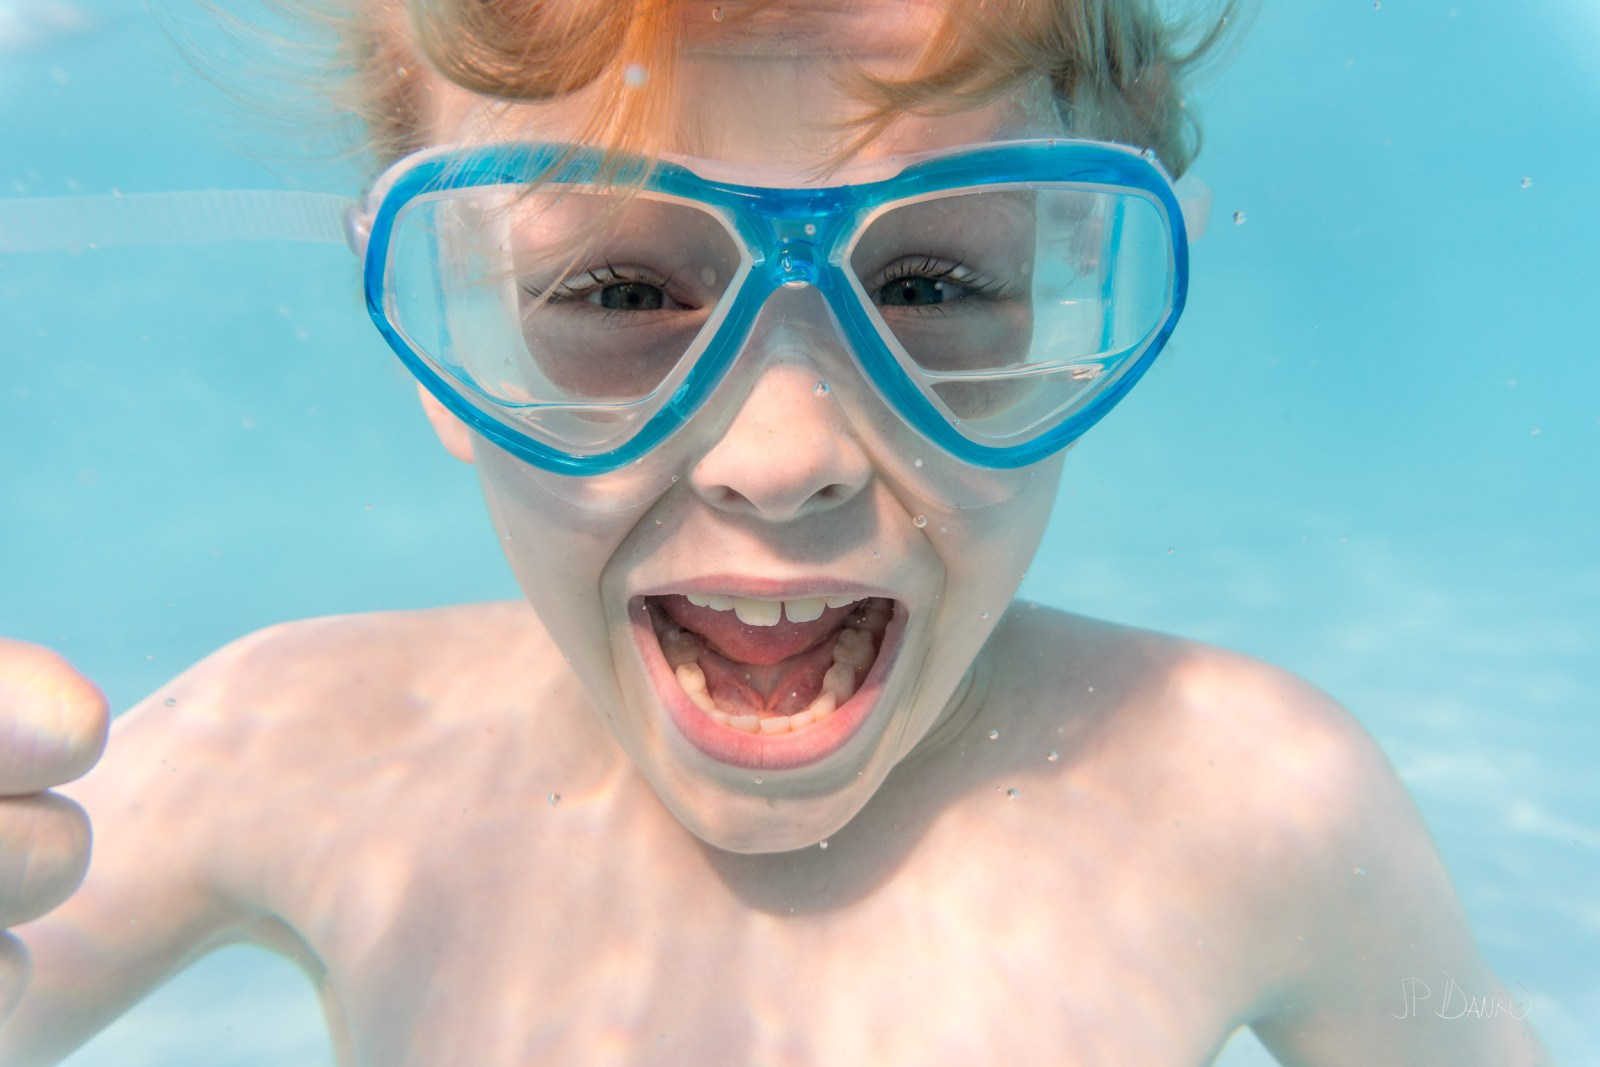 Underwater view of redhaired boy diving in cool blue holiday swimming pool